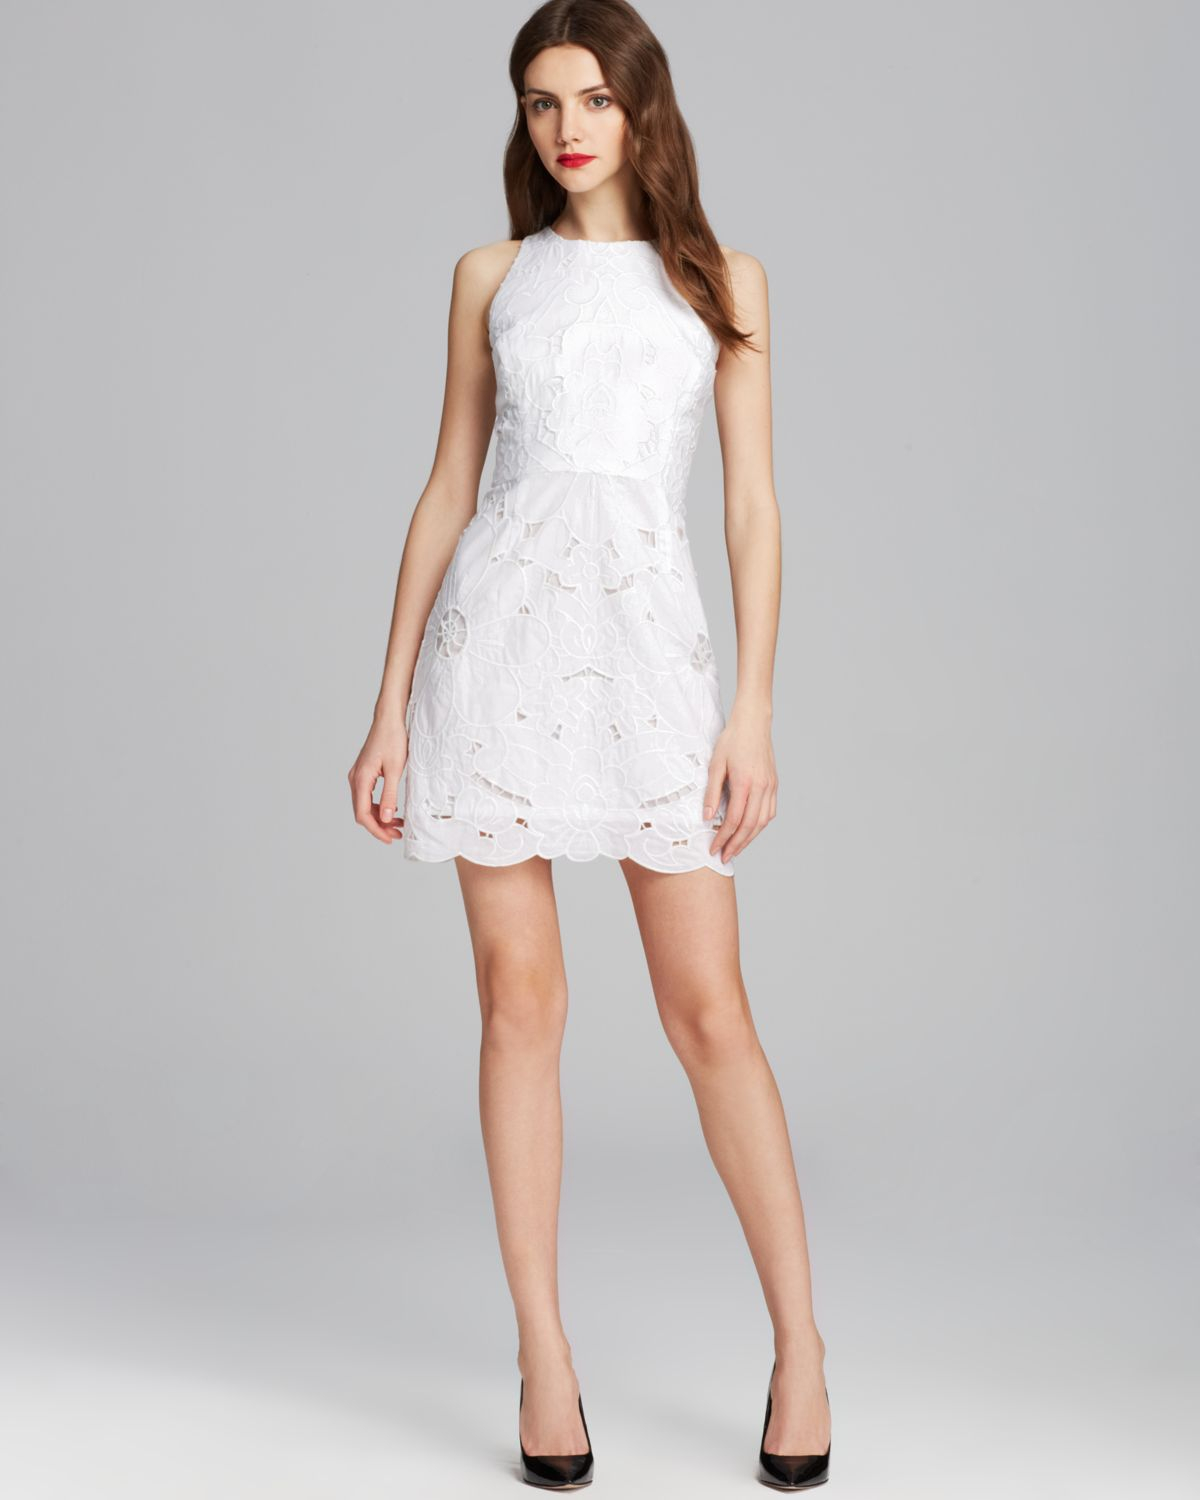 Milly Claudia Embroidered Dress in White | Lyst